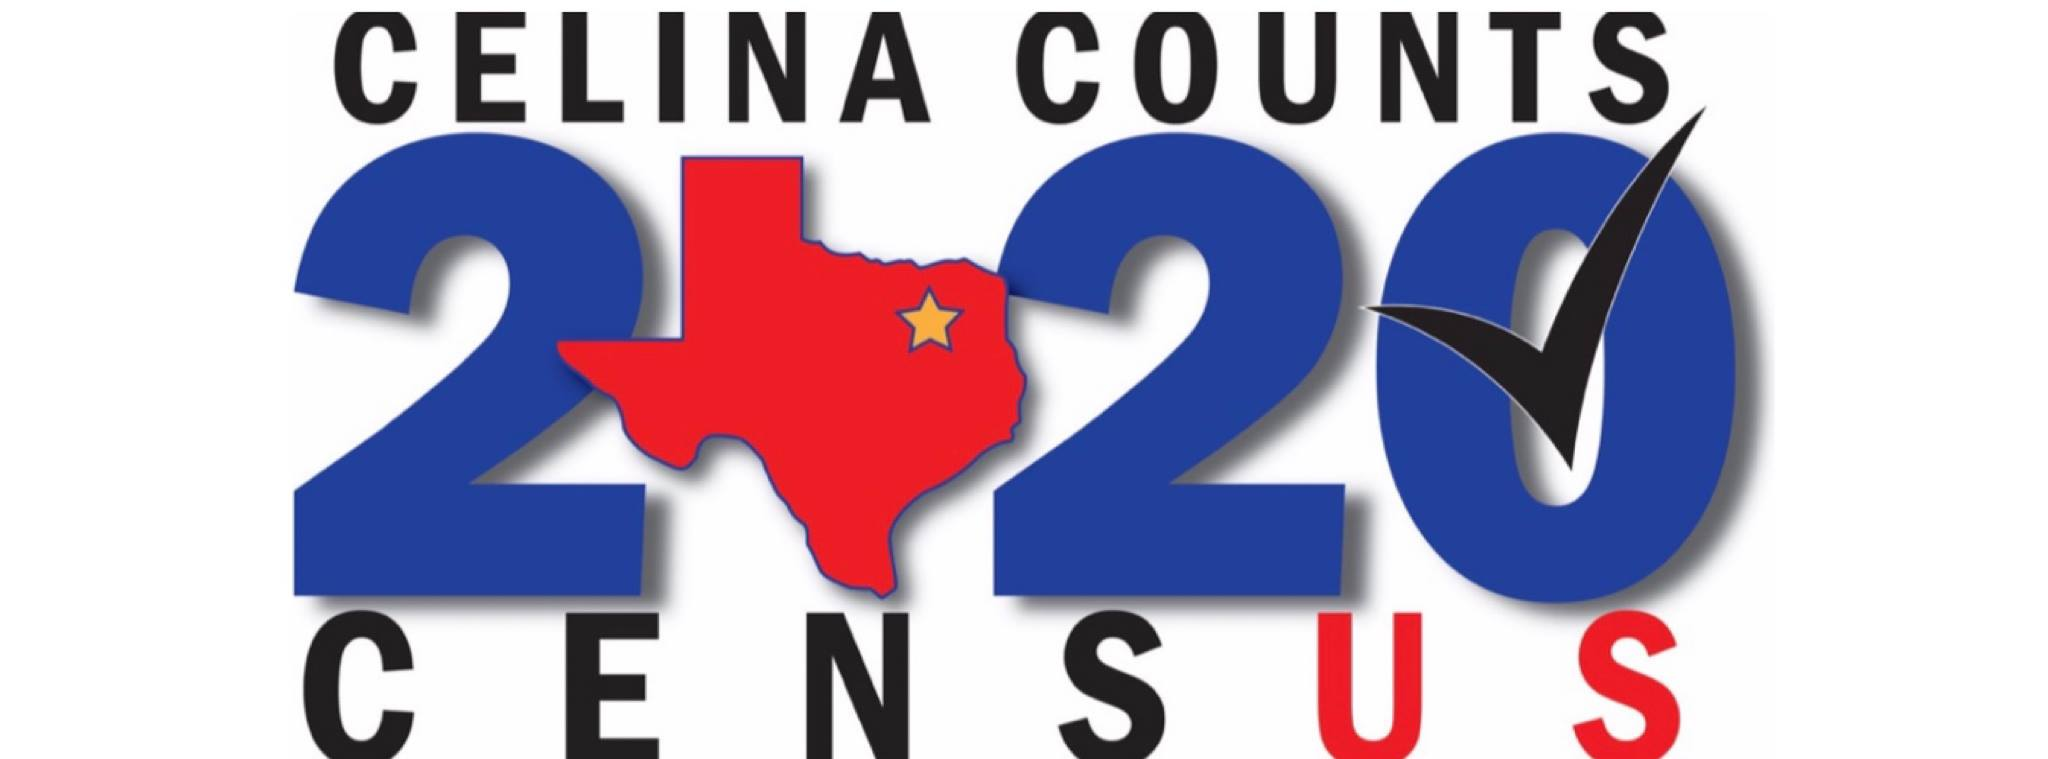 celina counts census